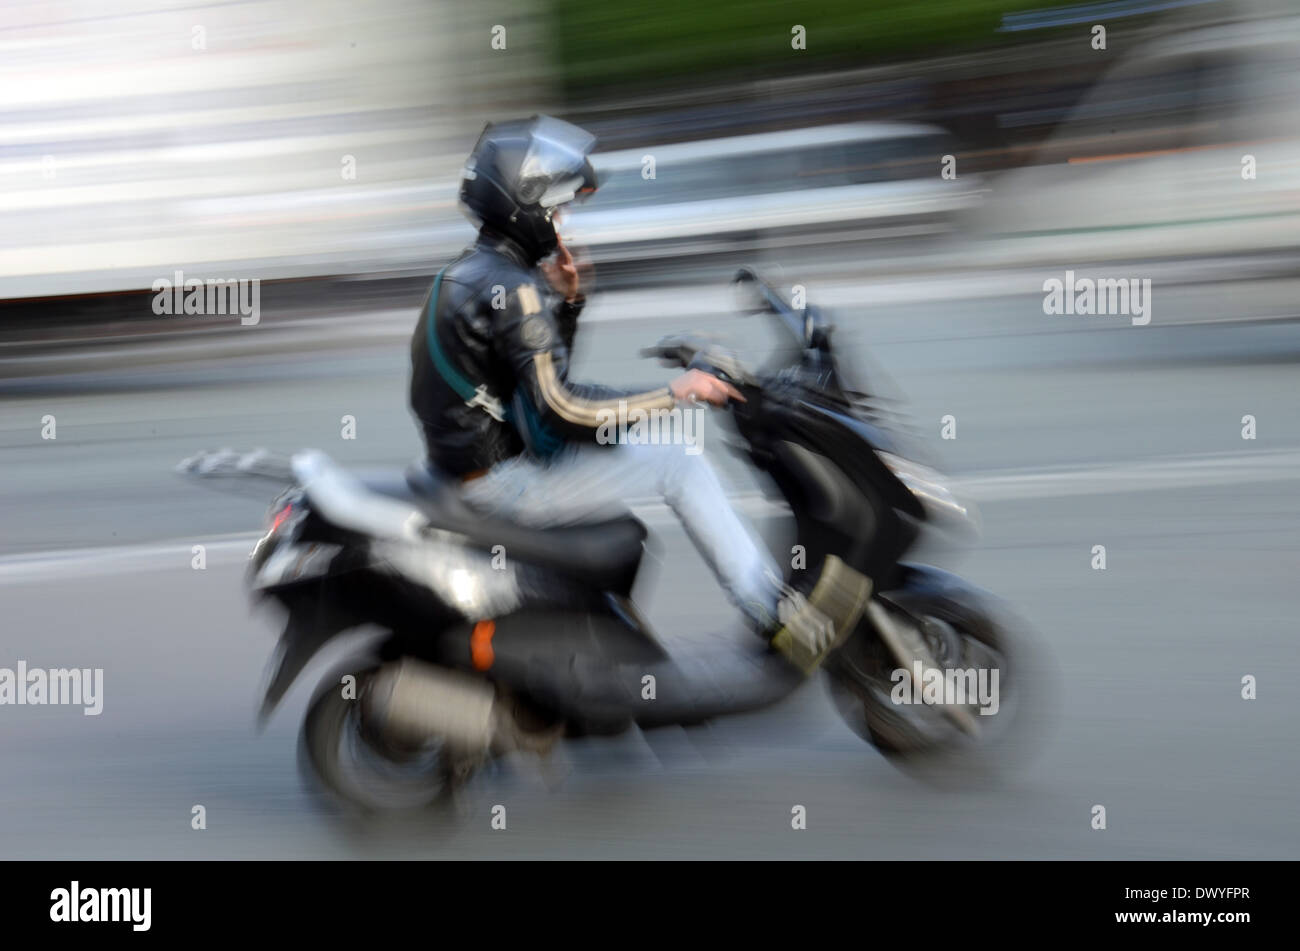 A scooter driver in the city. - Stock Image